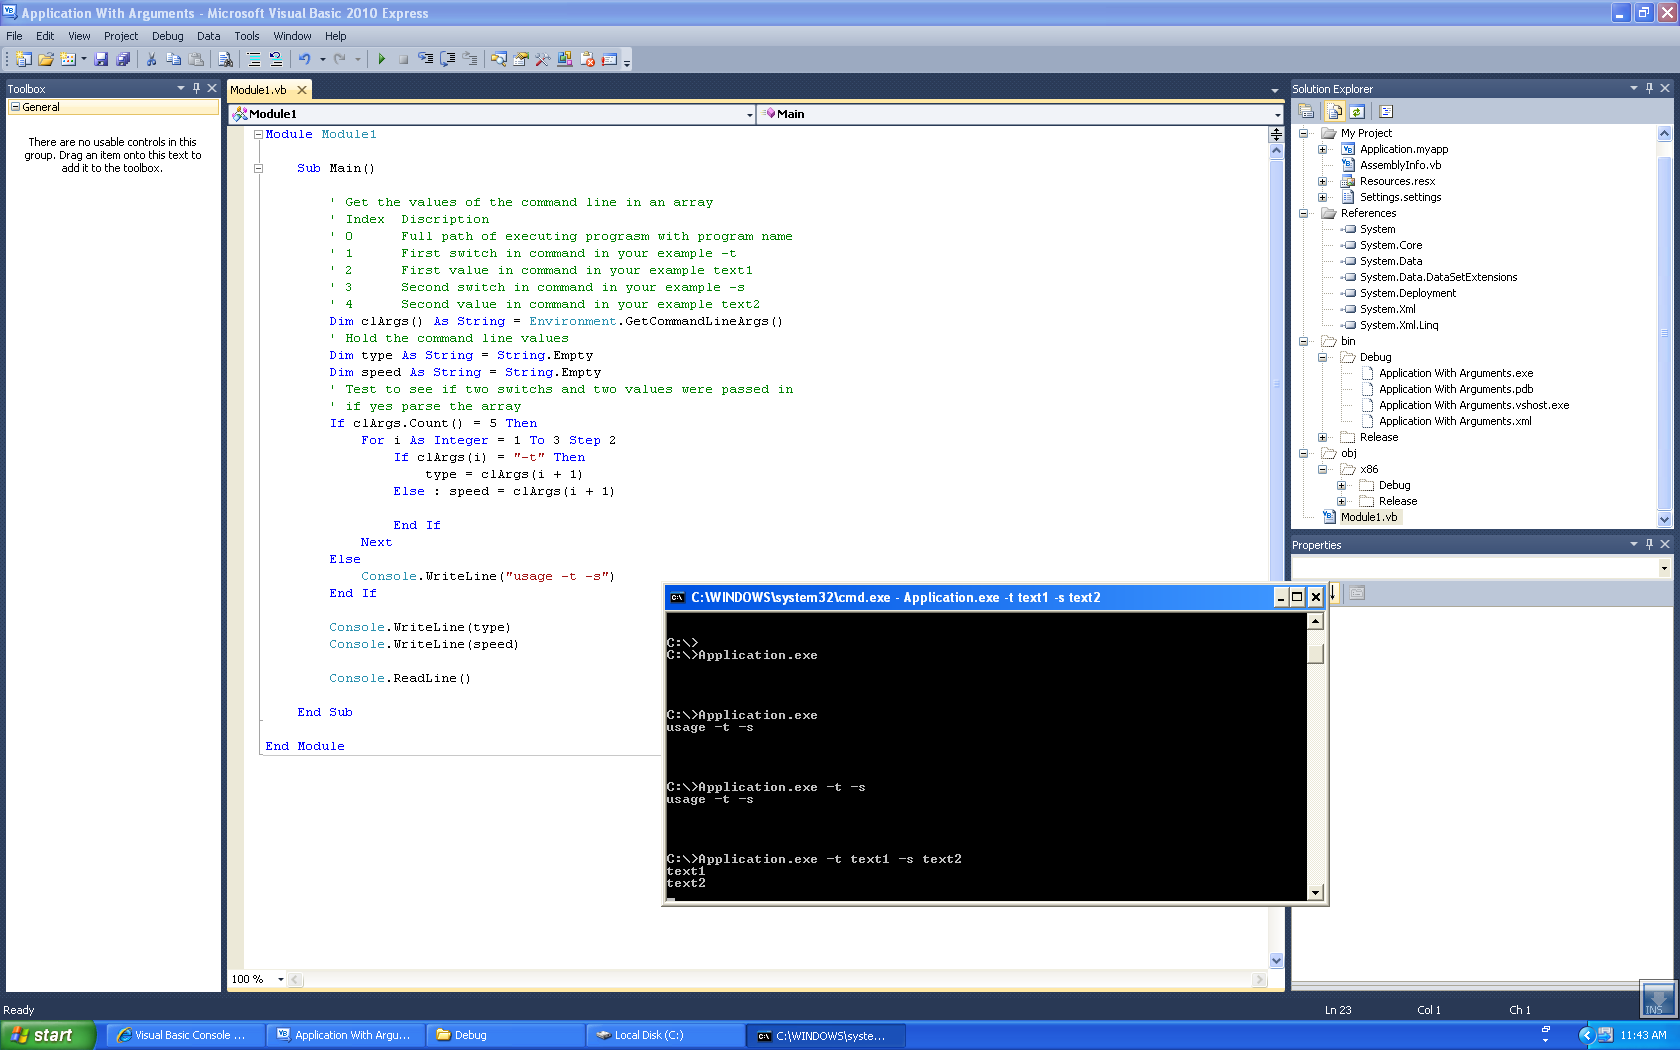 Visual Basic Console Application With Arguments